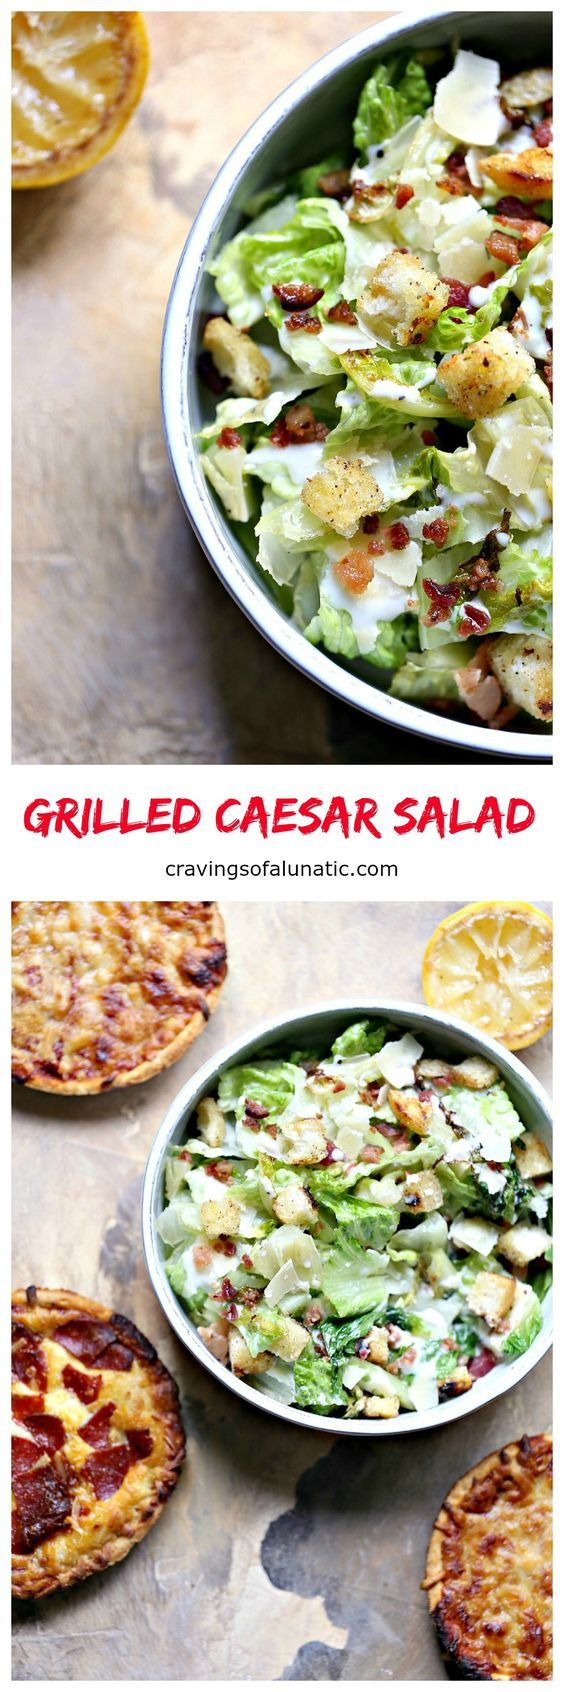 Grilled Caesar Salad from cravingsofalunatic.com- This recipe for Grilled Caesar Salad is out of this world. The lettuce and bread are cooked on the grill for optimal flavor. This is my daughter's favorite salad recipe.